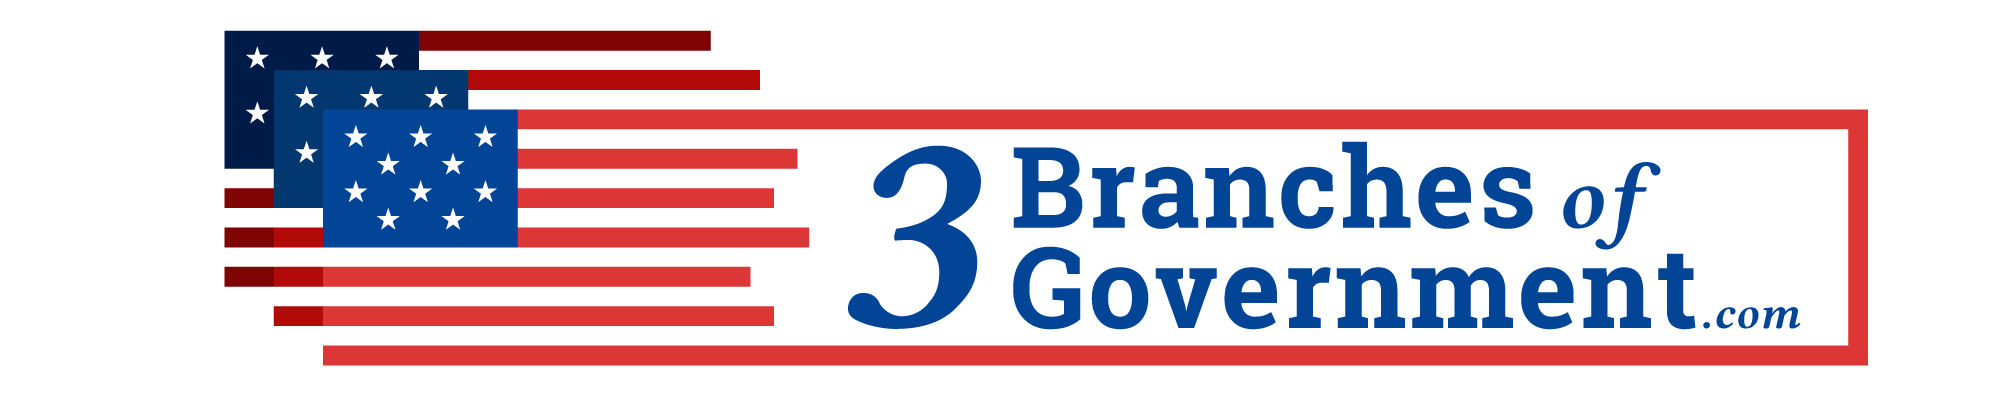 3 branches of government of the United States